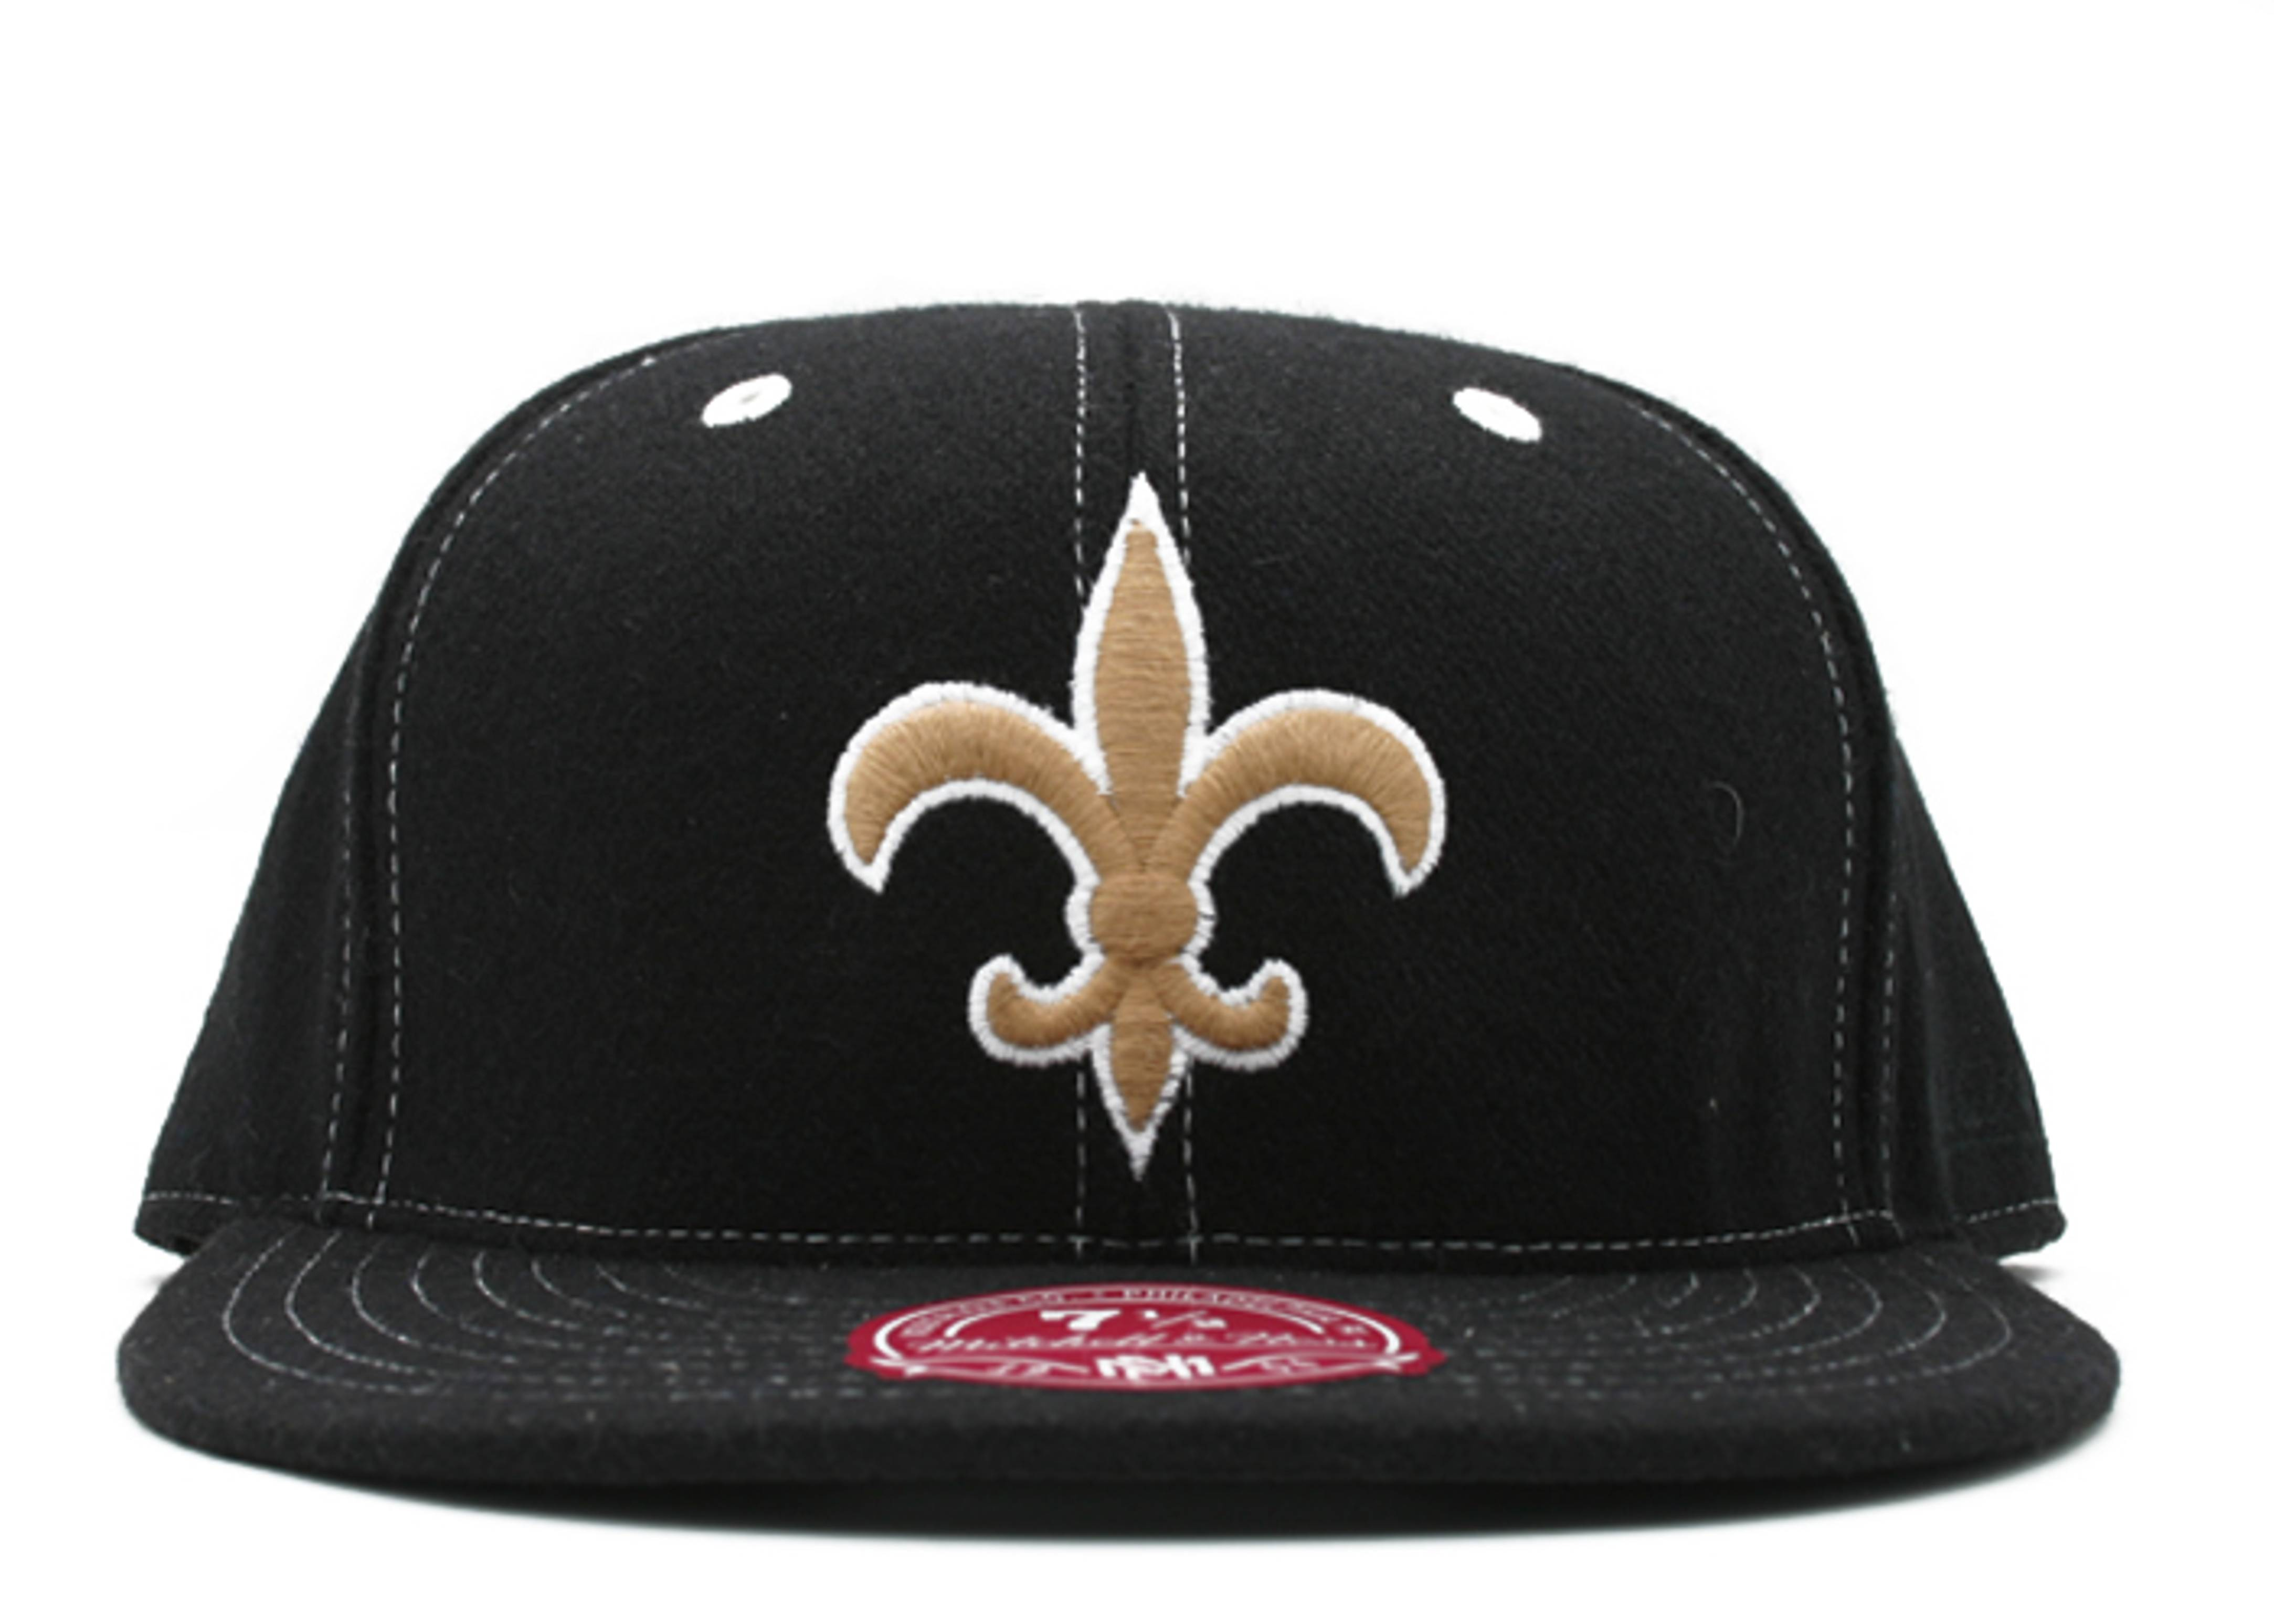 new orleans saints fitted